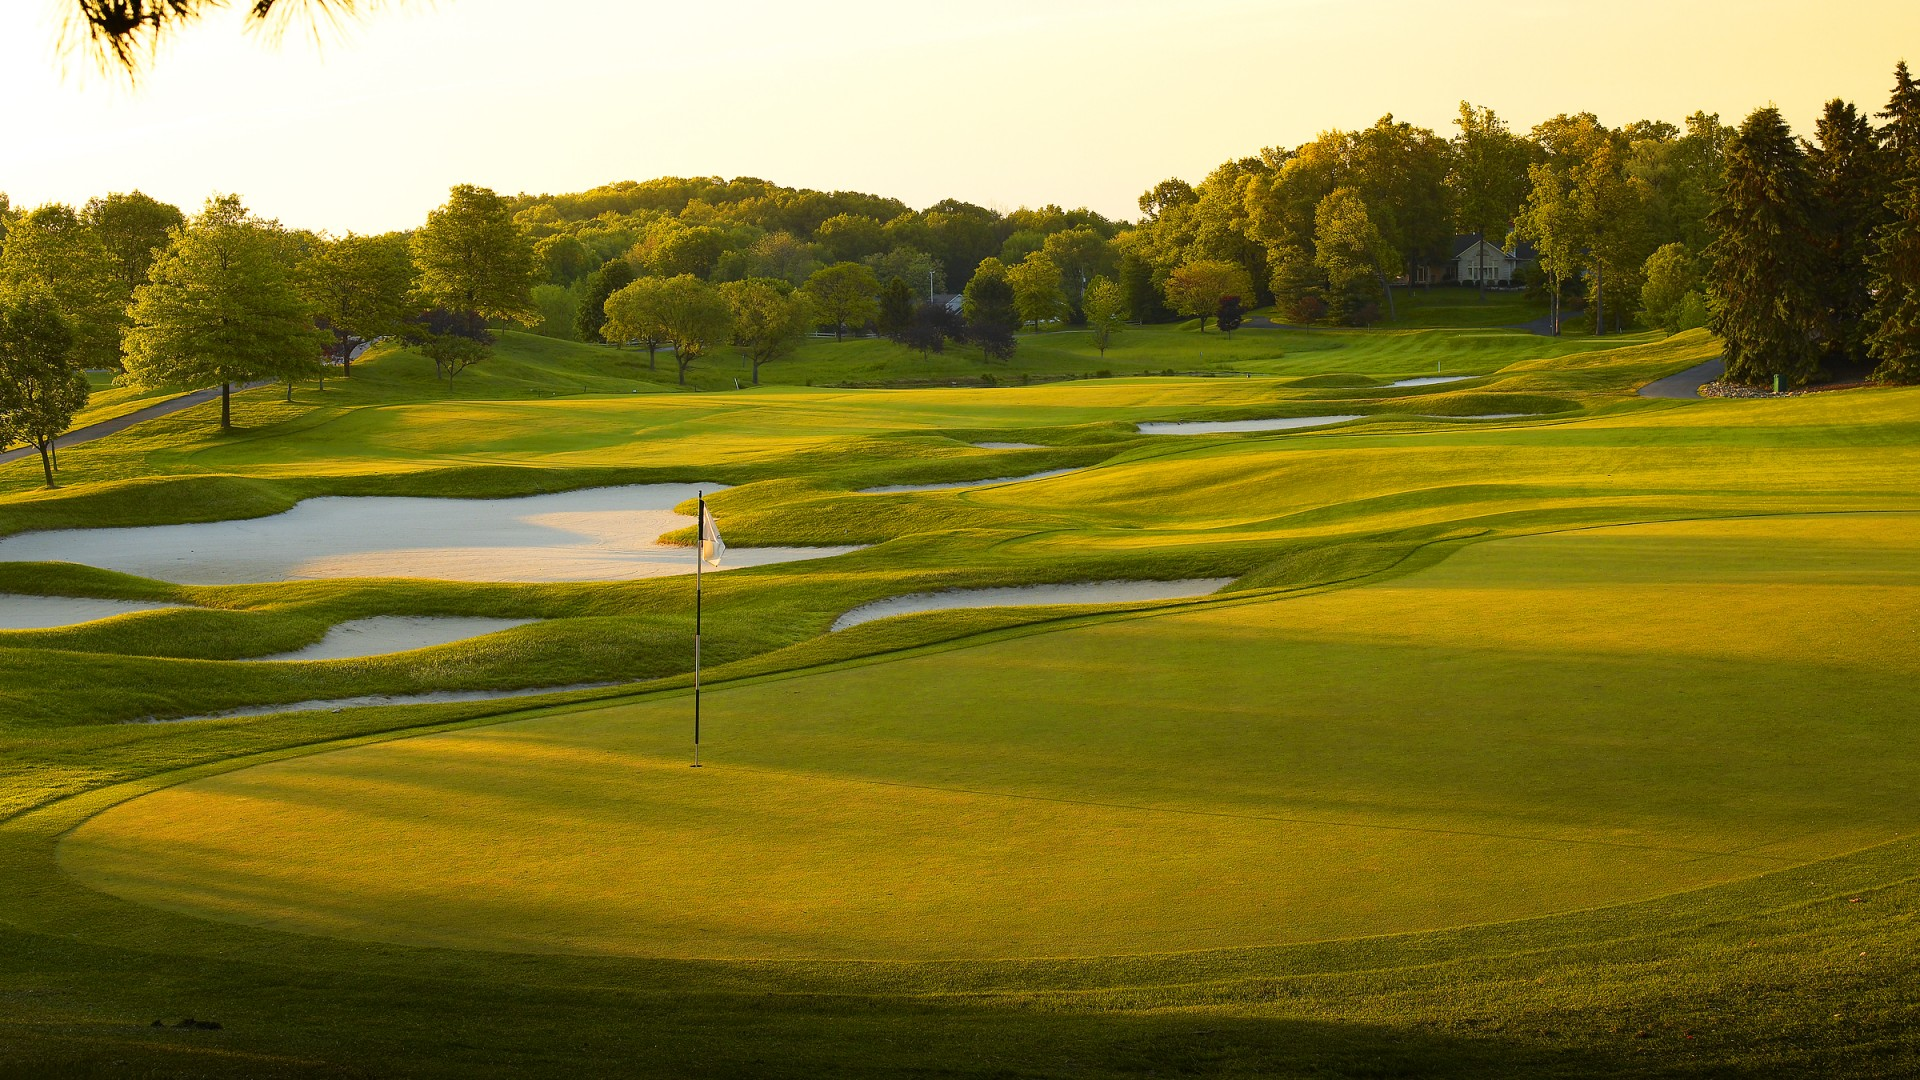 Jack Nicklaus Signature Golf Course at Glenmoor Country Club in Canton, Ohio